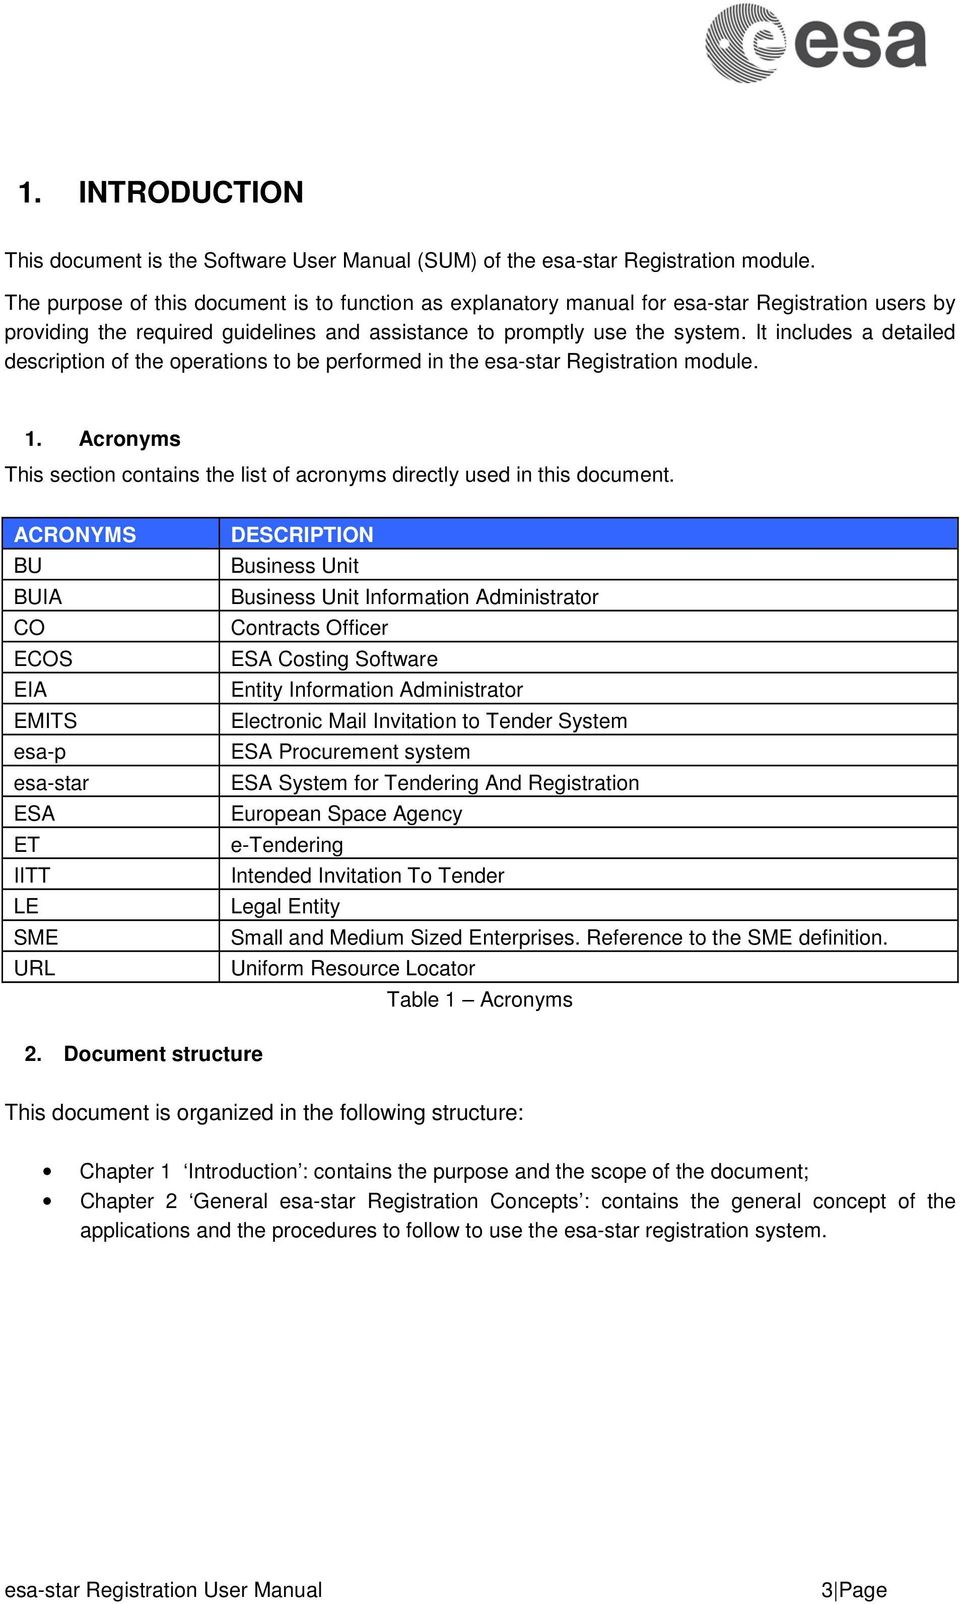 Esa star registration user manual pdf it includes a detailed description of the operations to be performed in the esa star stopboris Image collections